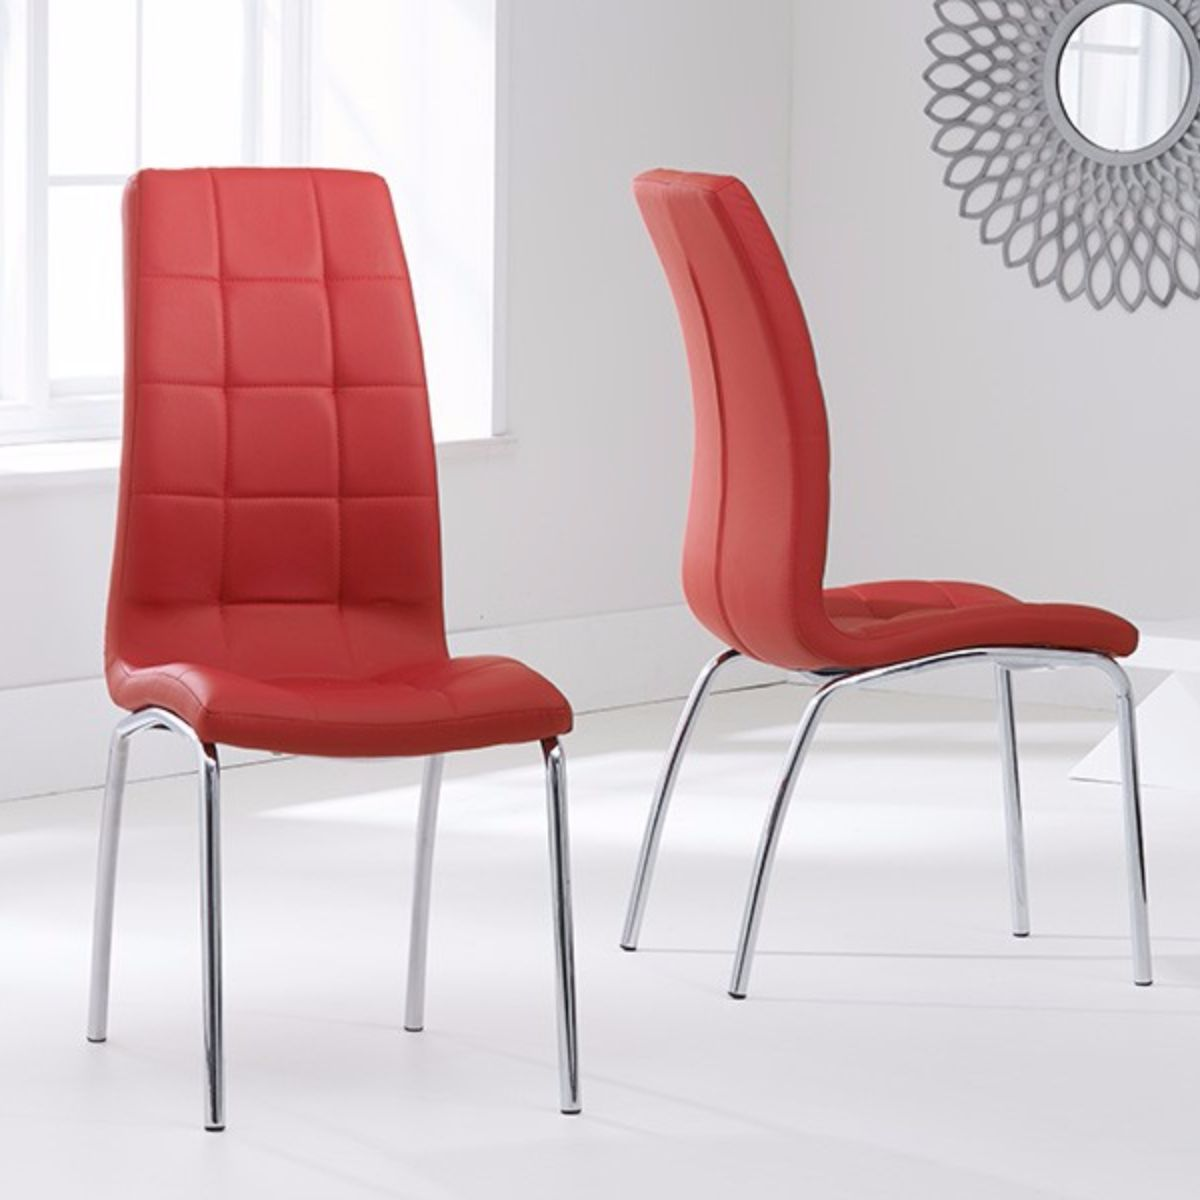 Munich Glass Dining Table with 4 Chairs (Chair Colour: Red)